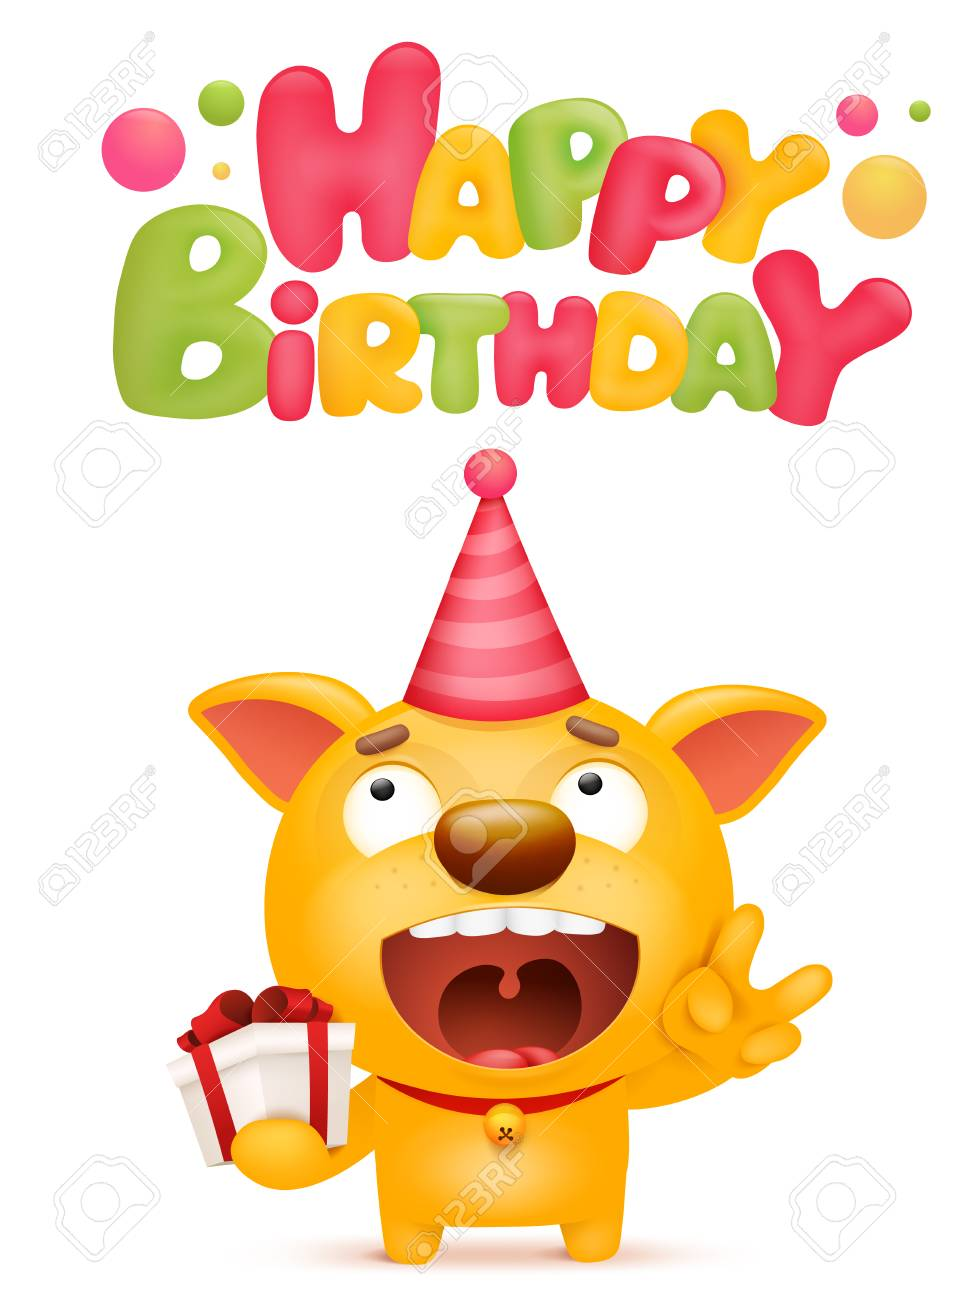 Happy Birthday Card Template With Yellow Emoji Dog Cartoon Character Vector Illustration Stock